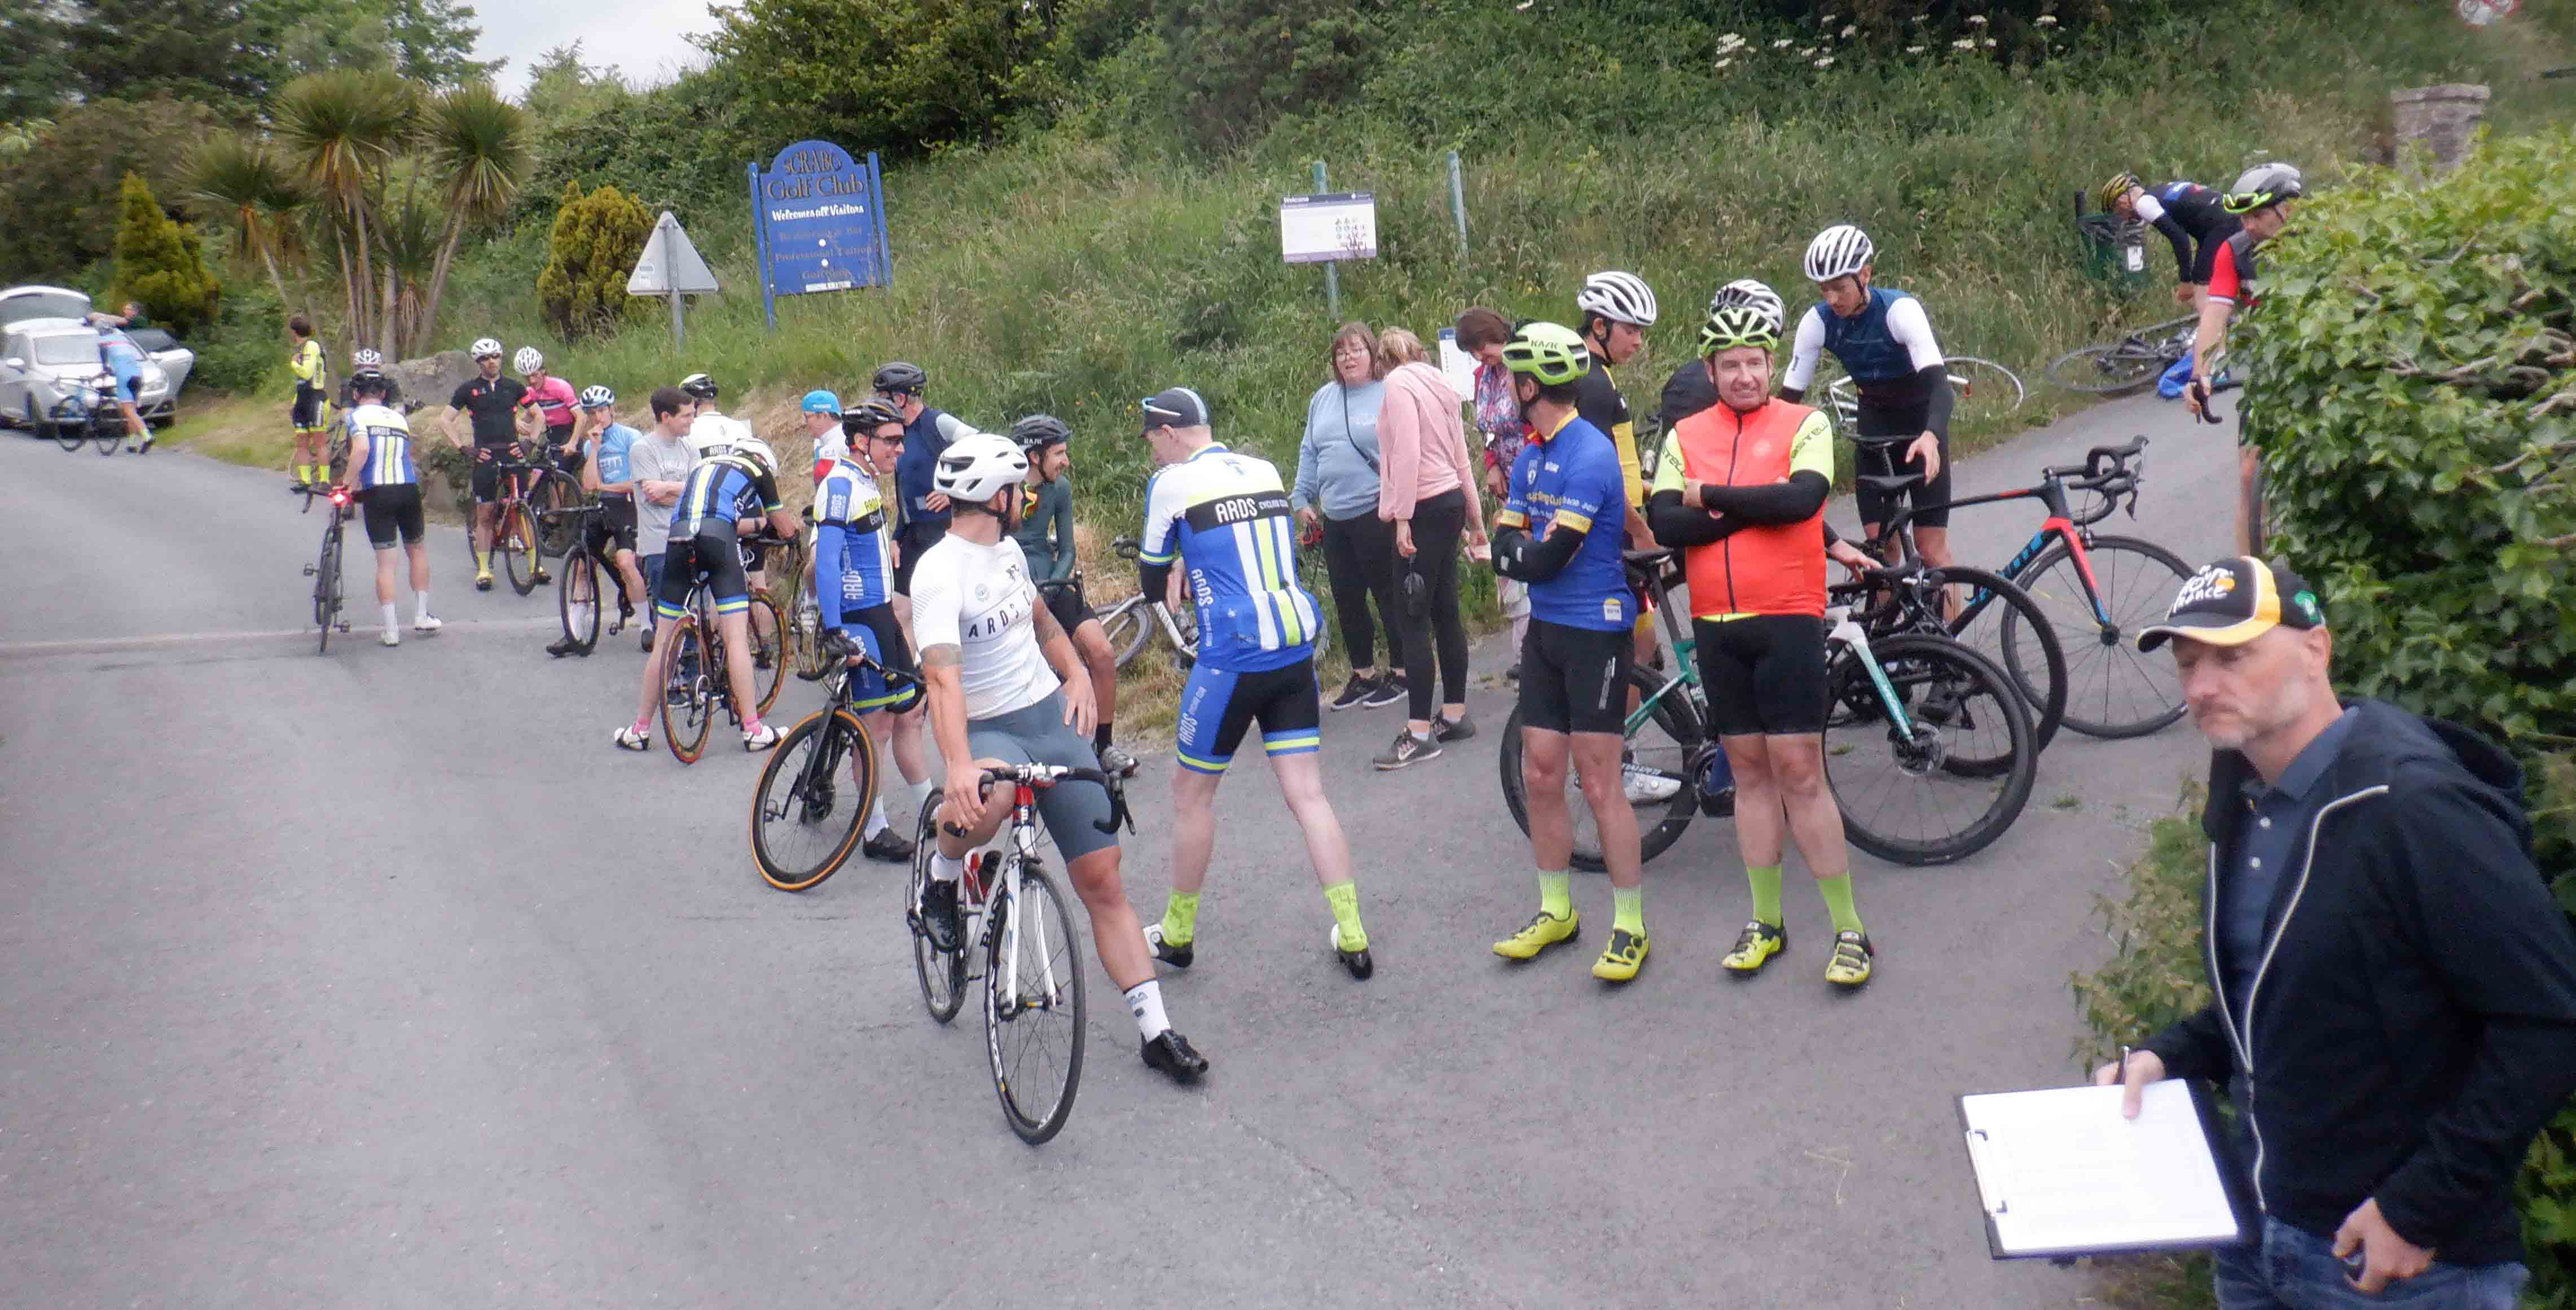 The club chairman ponders why hillclimbs always seem to gather a good crowd...